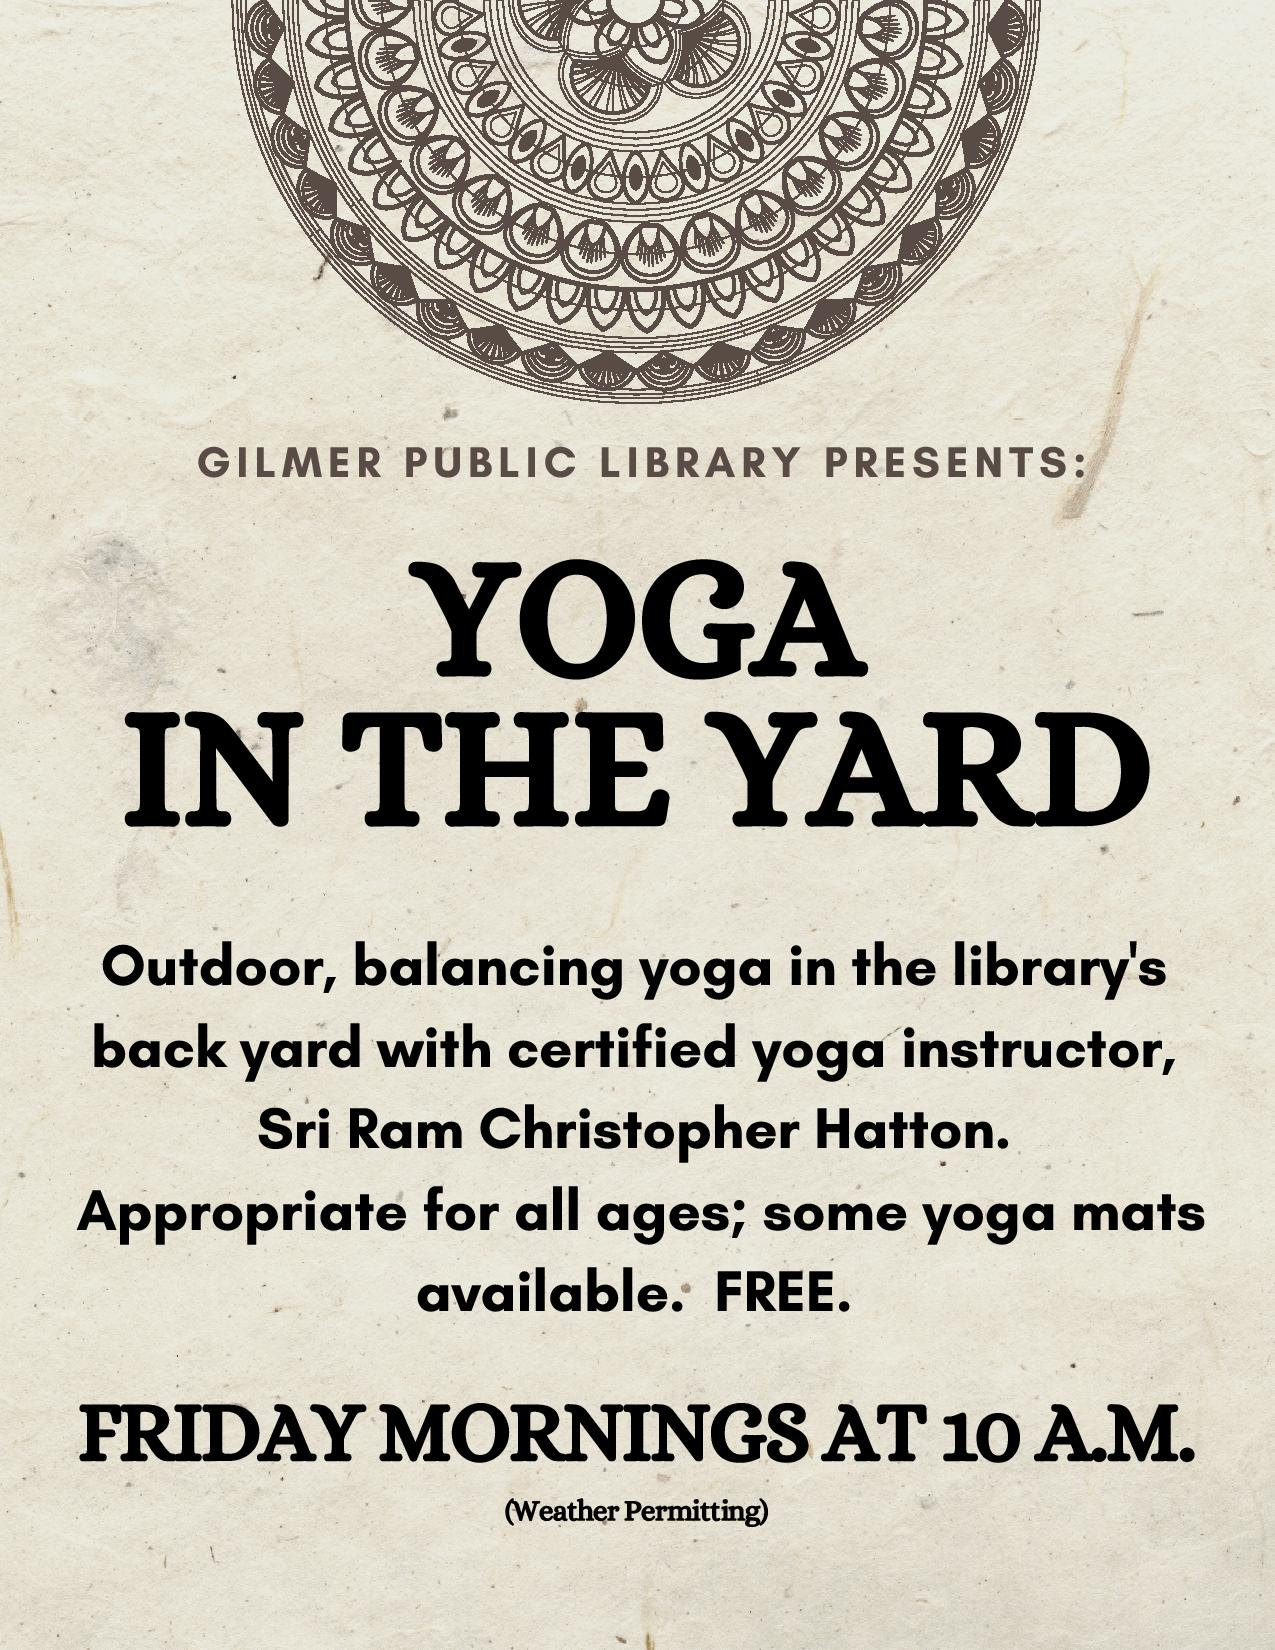 Strengthen your core, increase your sense of balance and calm your mind with Yoga in the Yard.